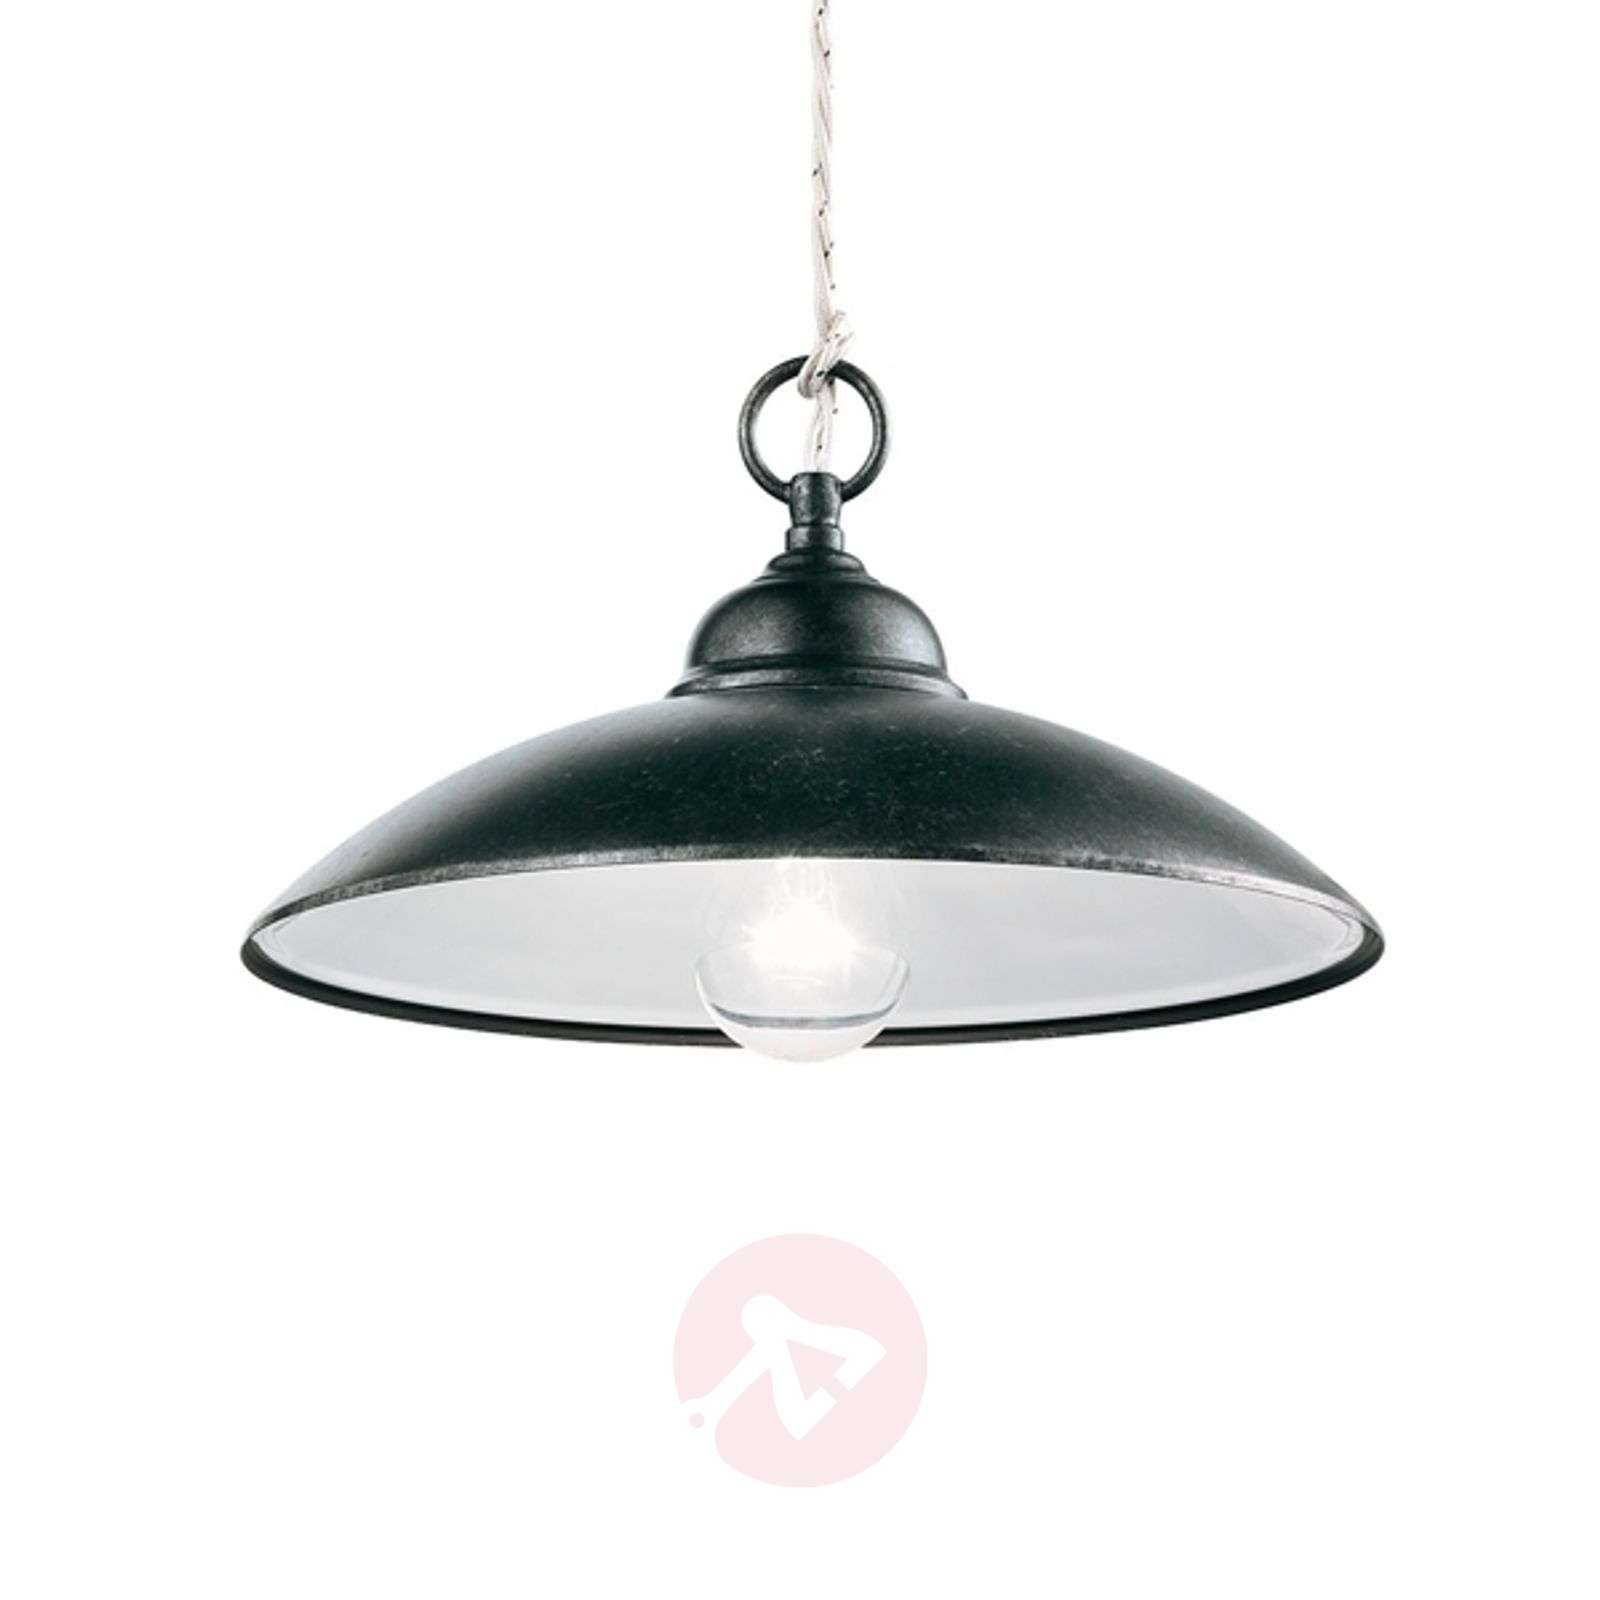 Discrète suspension Baja-4011294X-01